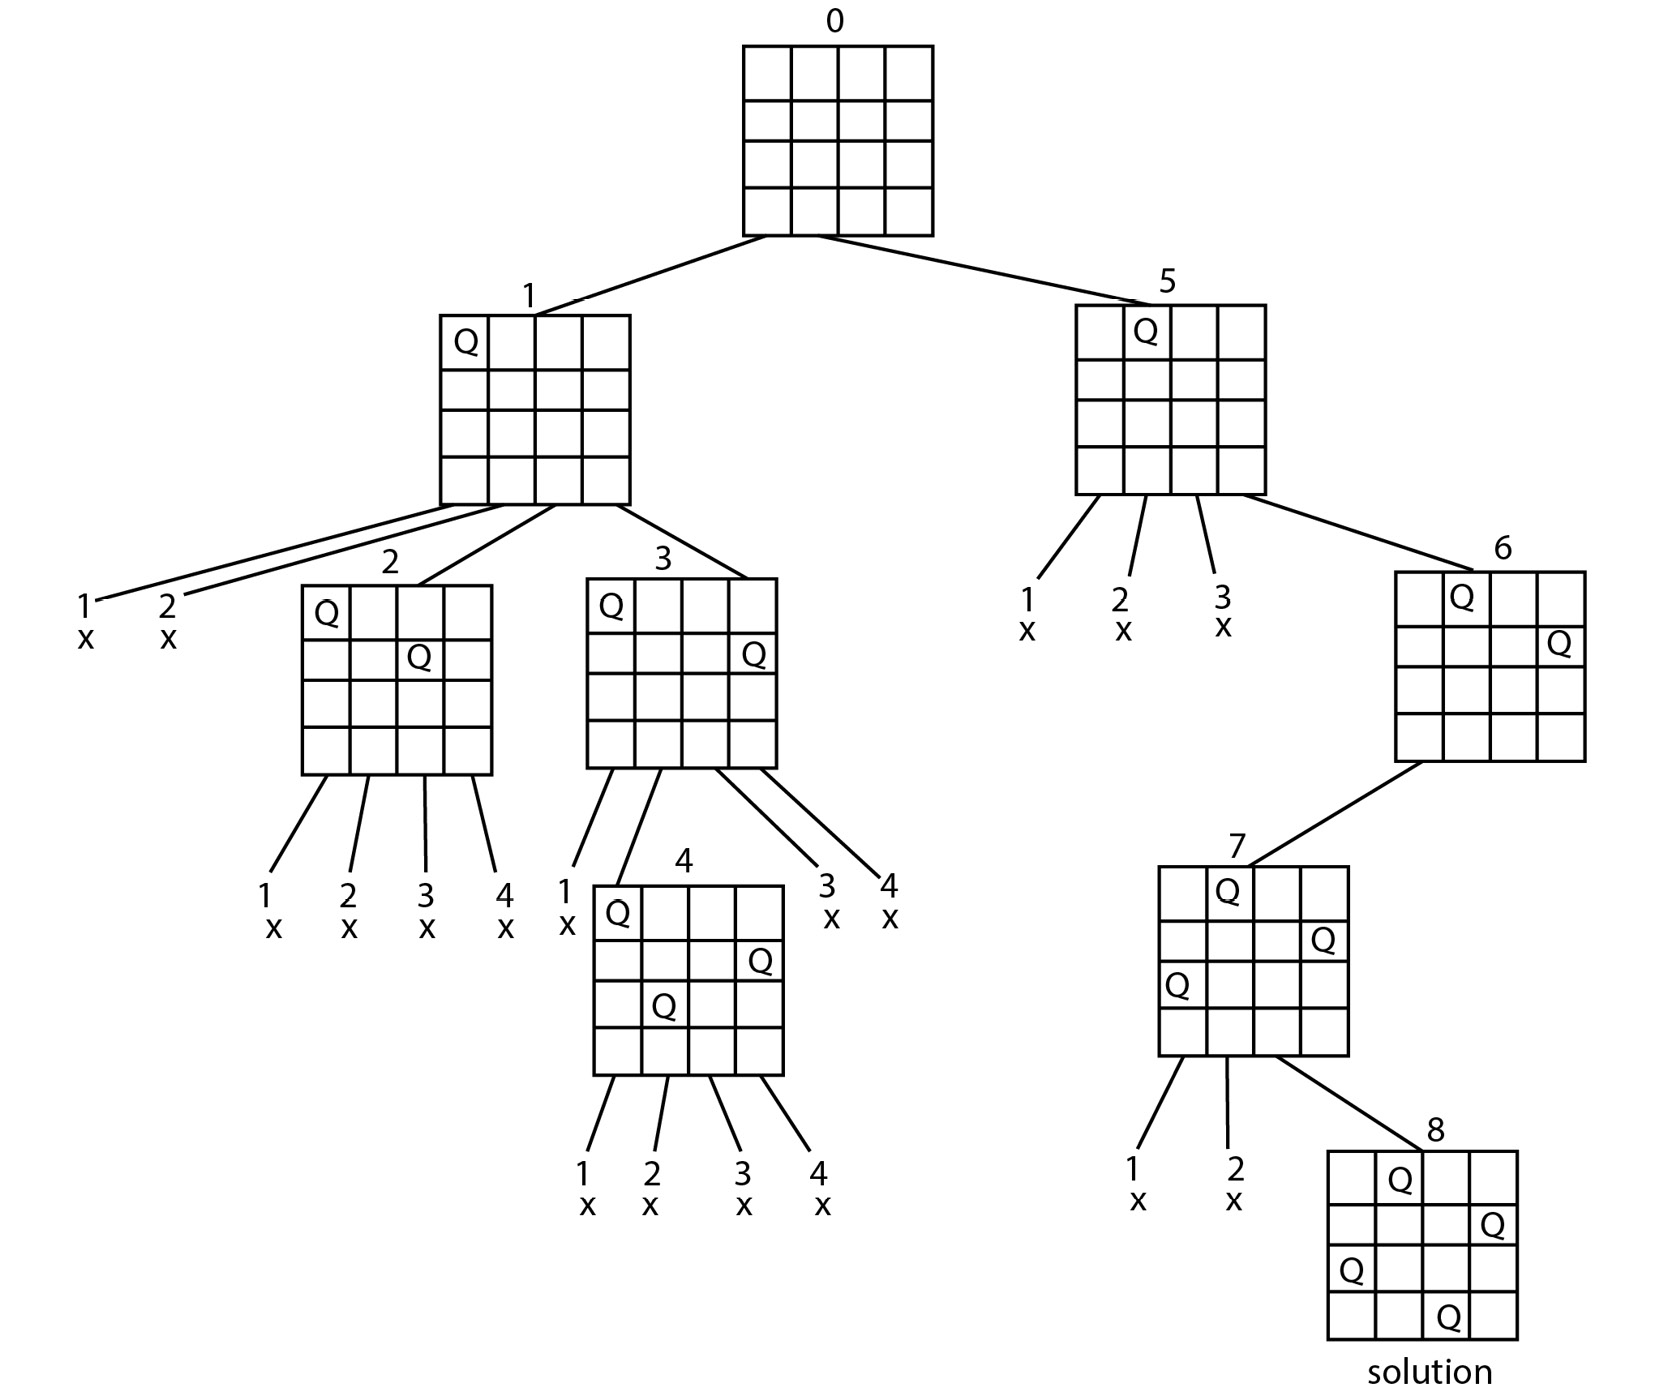 Figure 1.3: Recursion with the N-Queens problem